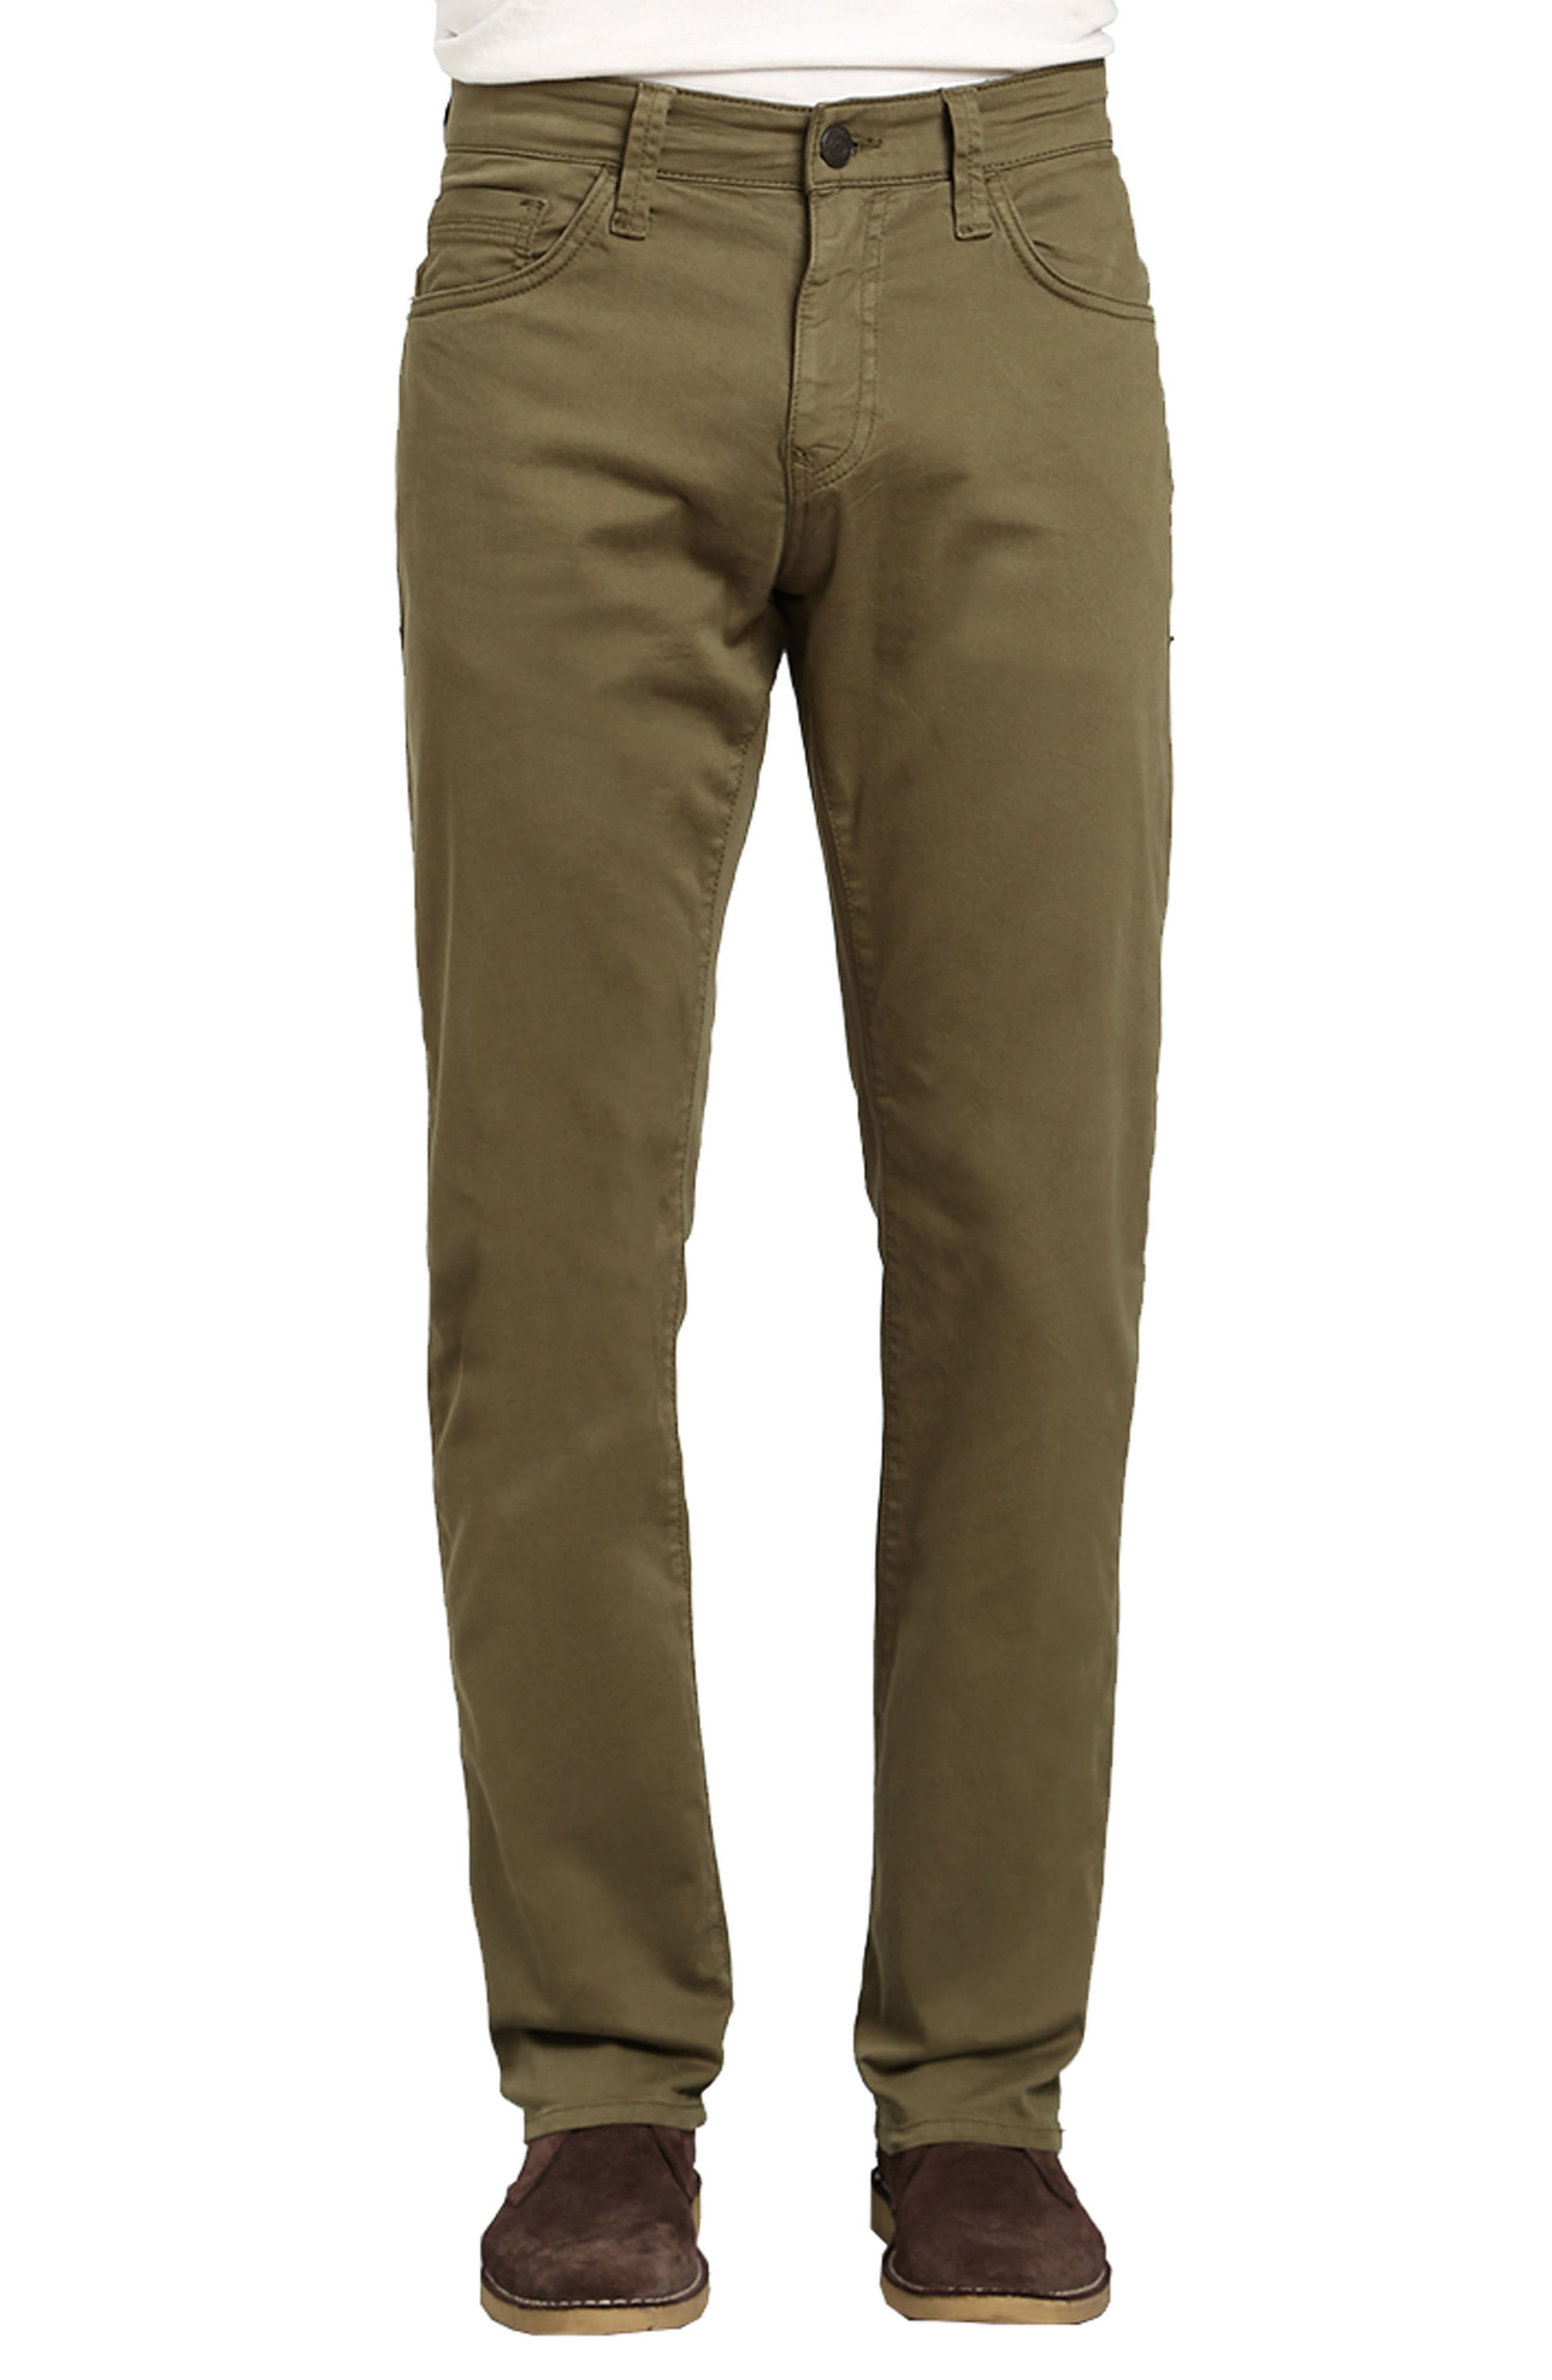 Zach Straight Fit Twill Pants,                         Main,                         color, GREEN OLIVE TWILL